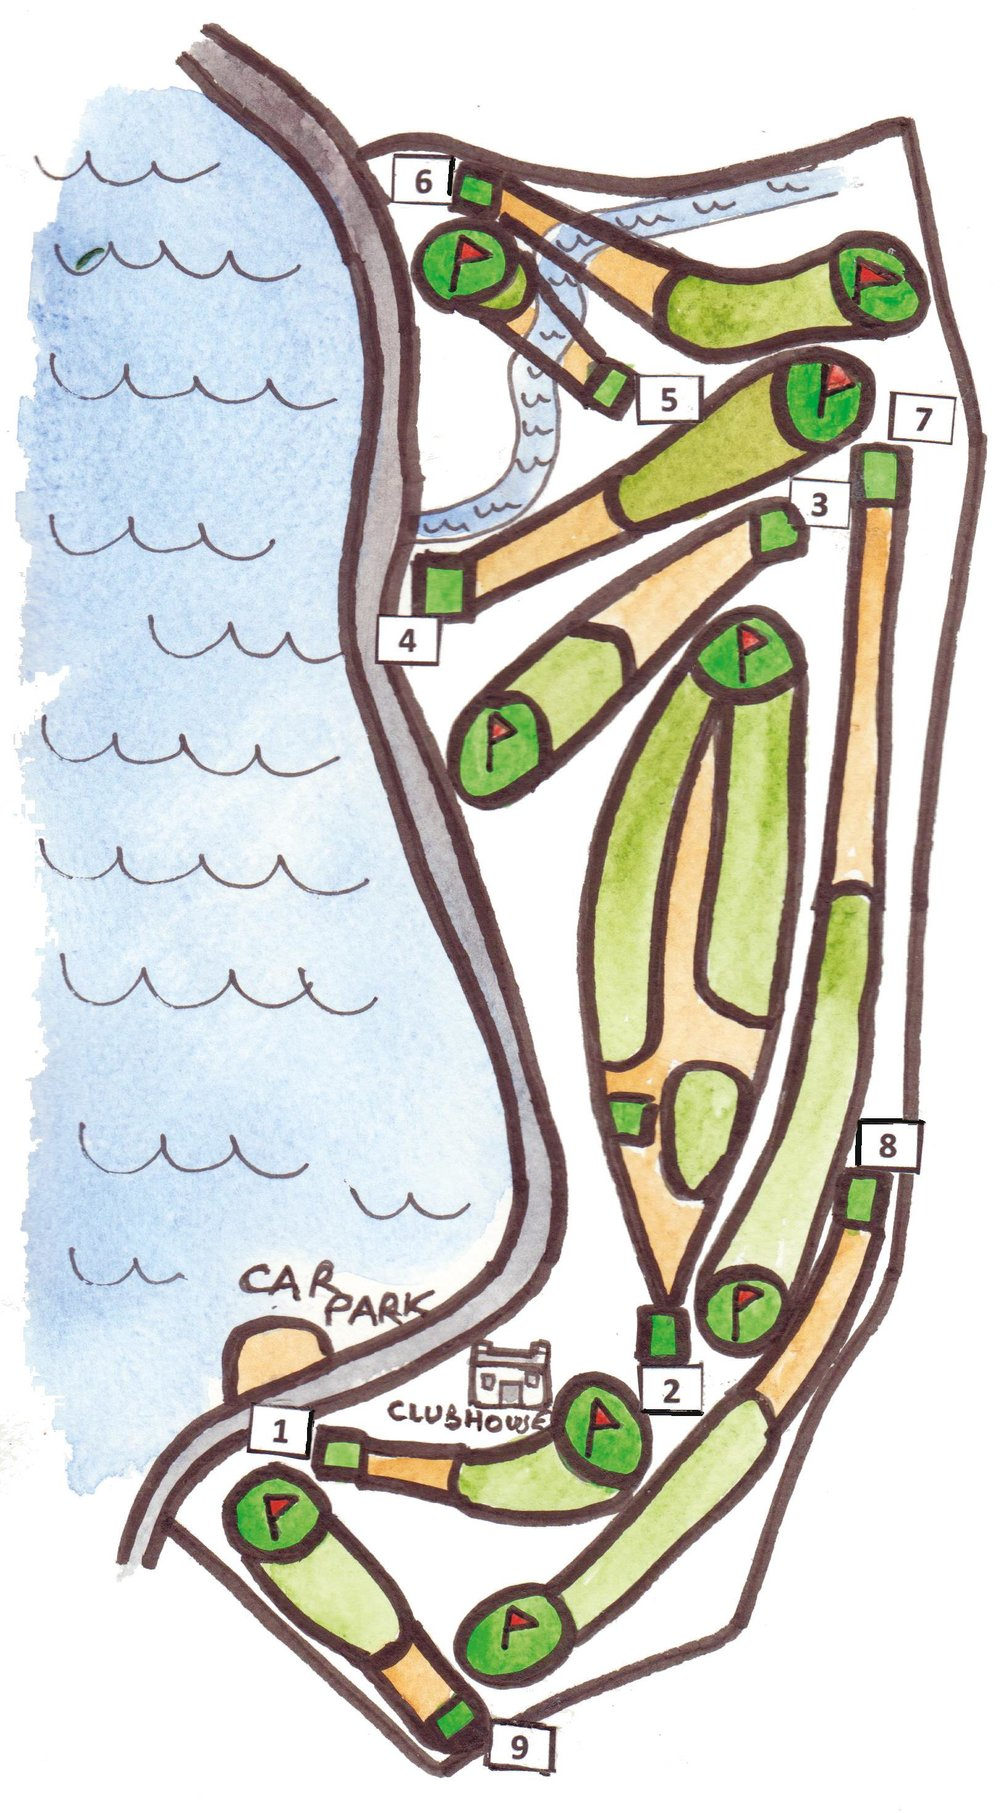 TGC-course-map.jpg